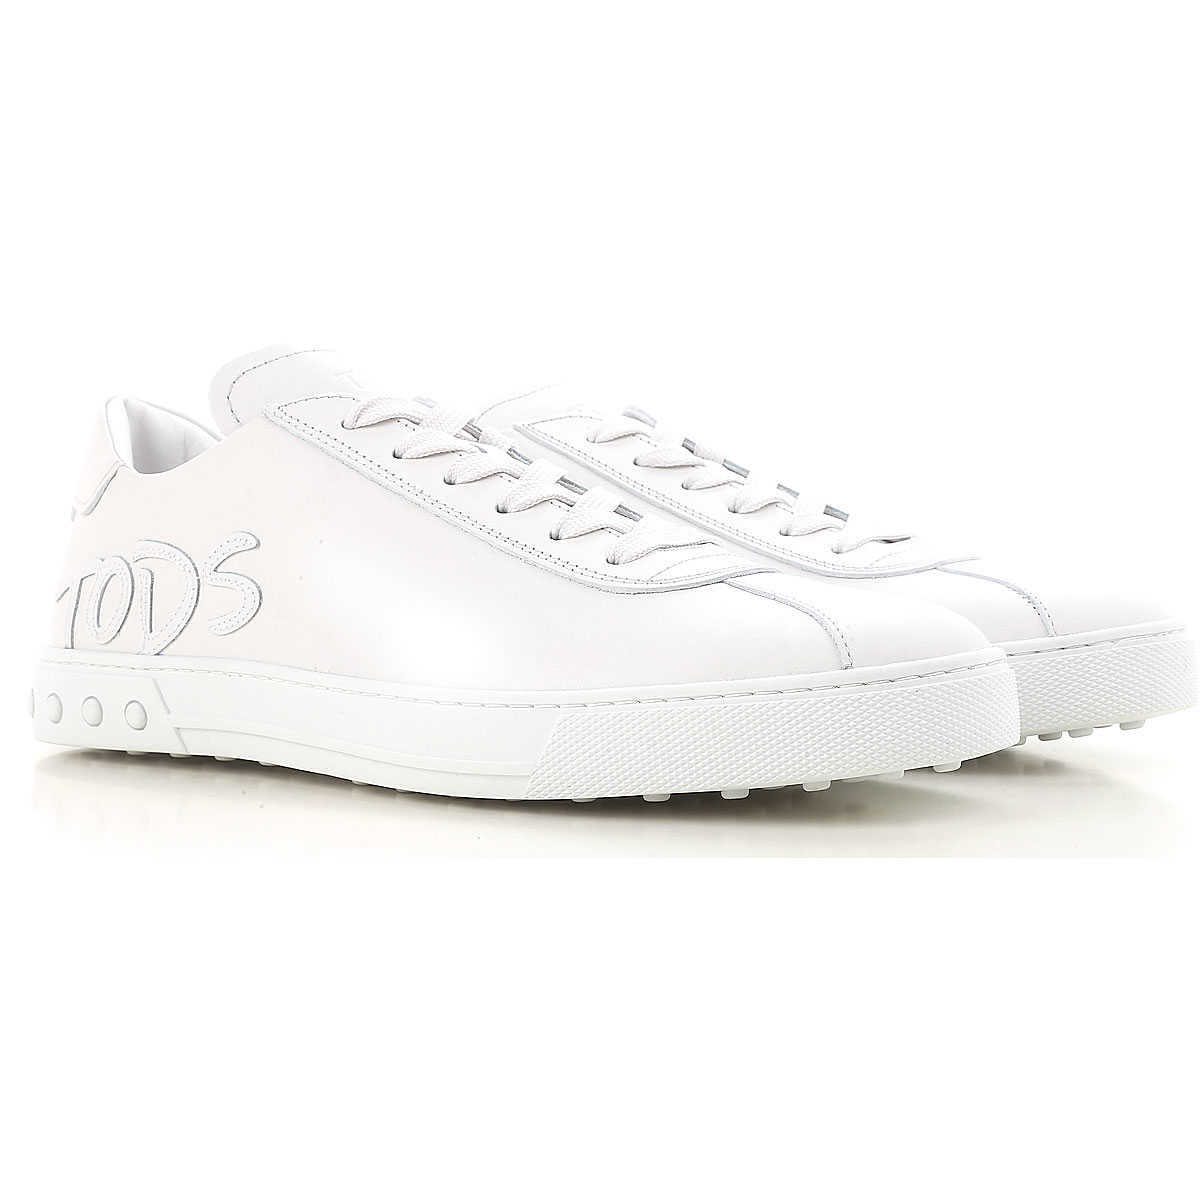 Tods Sneakers for Men On Sale White UK - GOOFASH